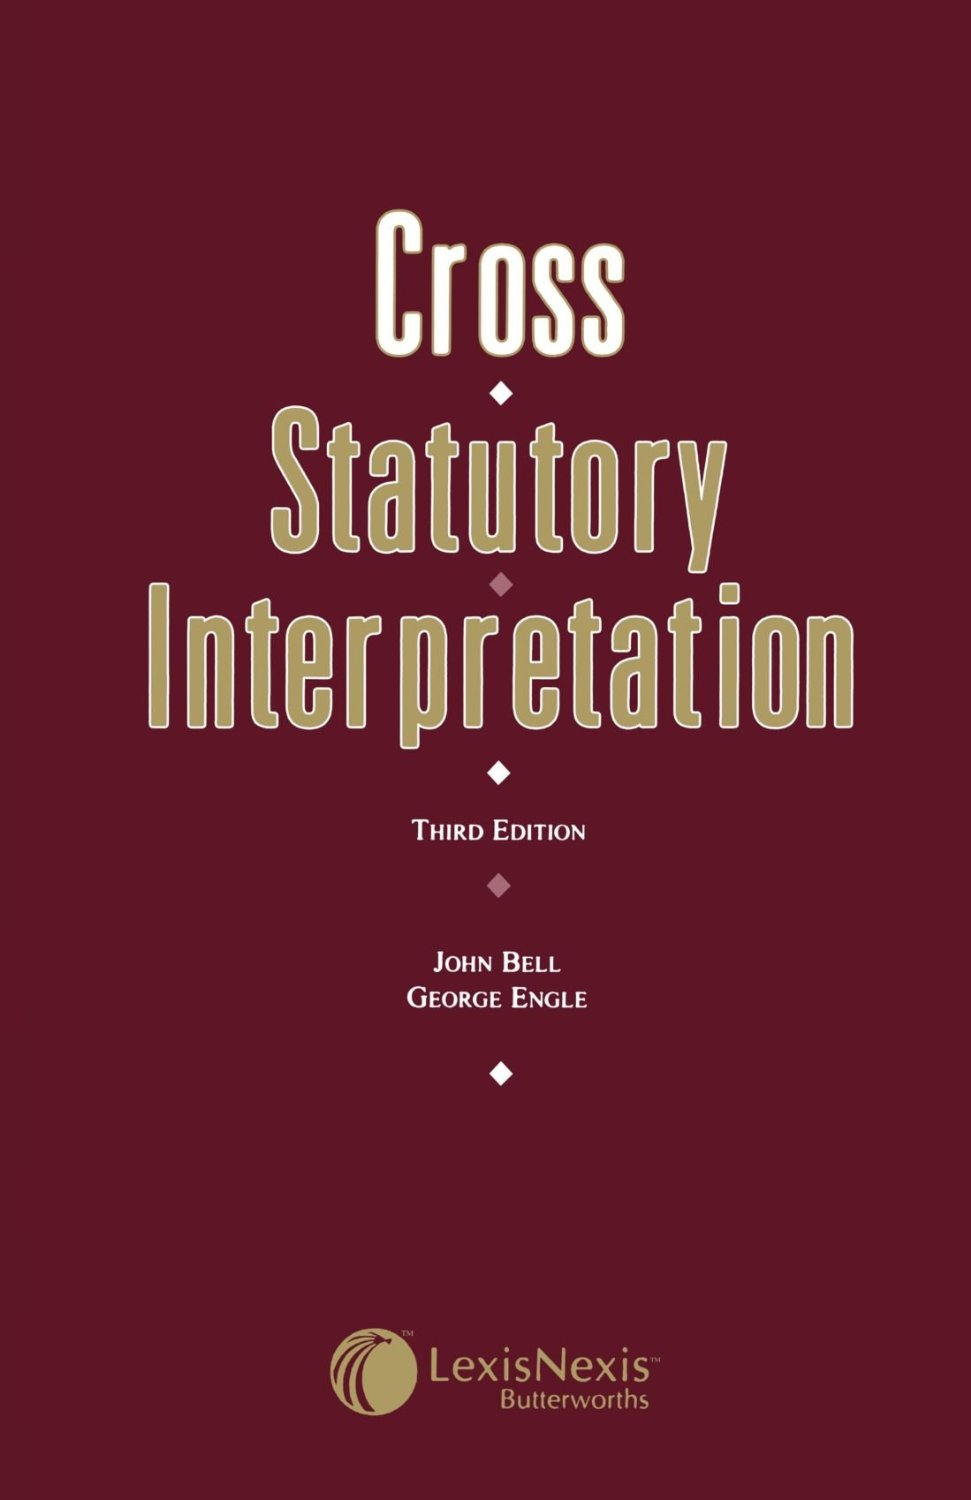 CROSS: ON STATUTORY INTERPRETATION